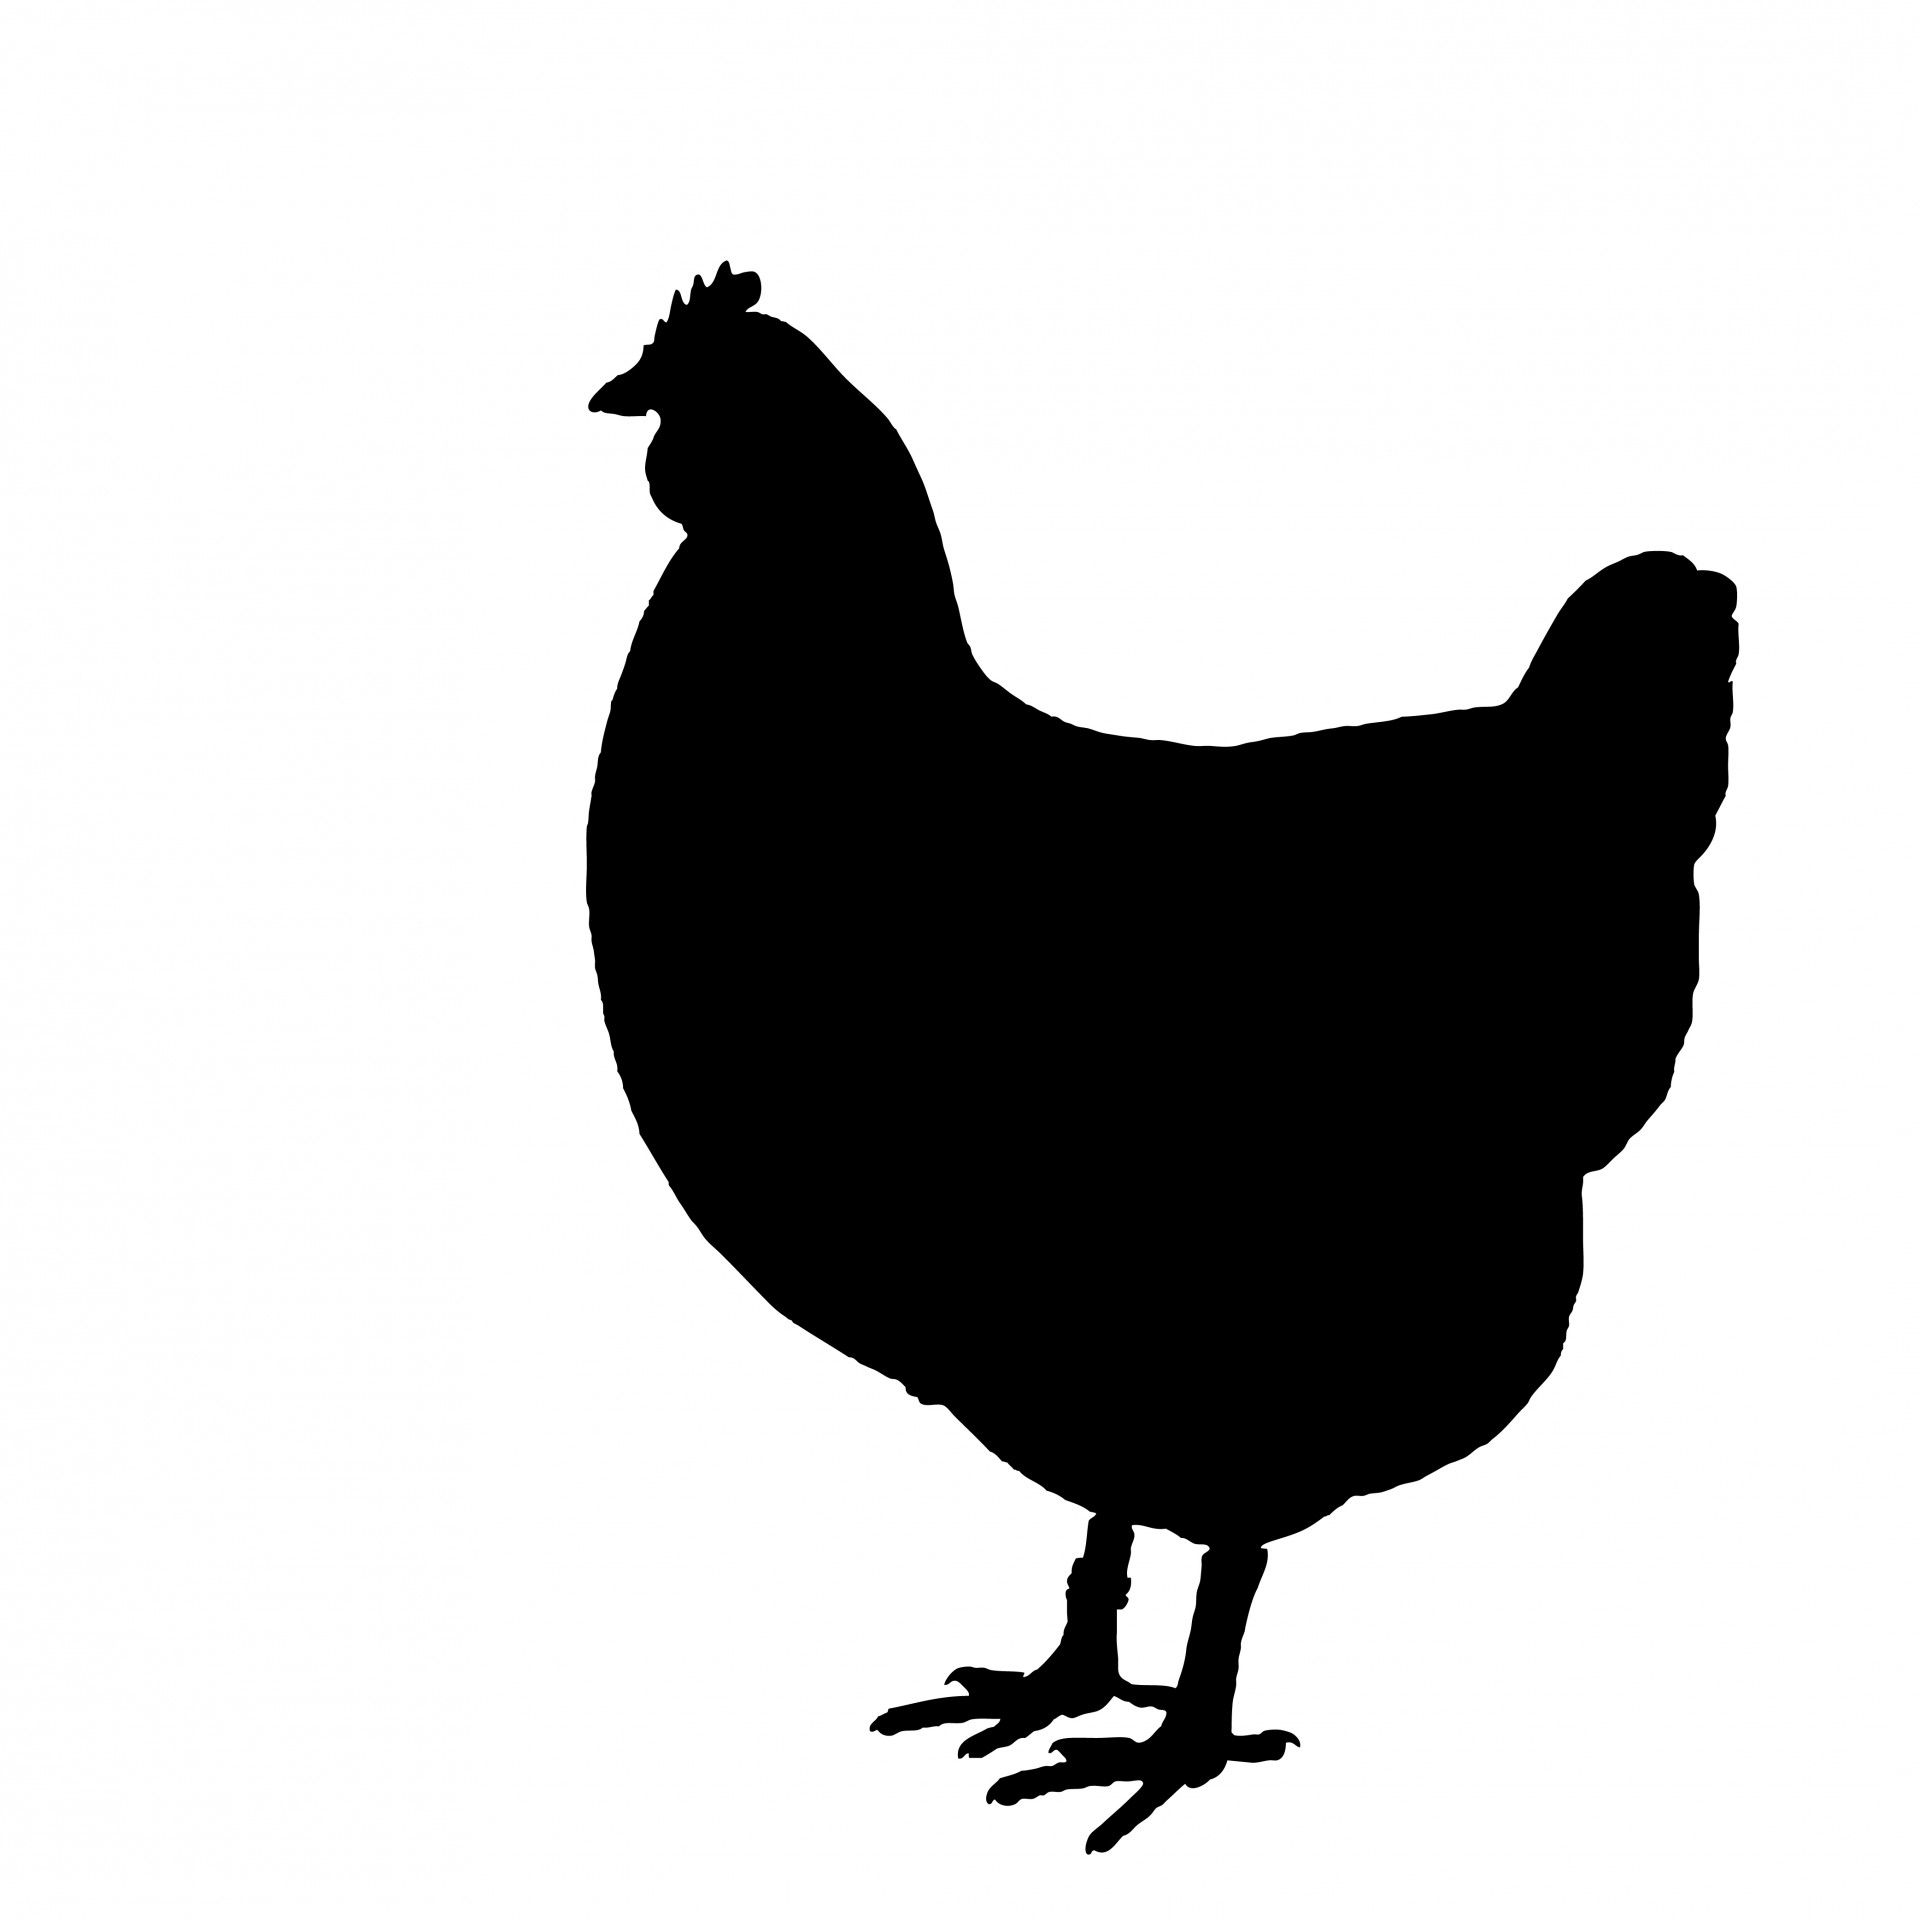 Chicken Silhouette Clipart Free Stock Photo.